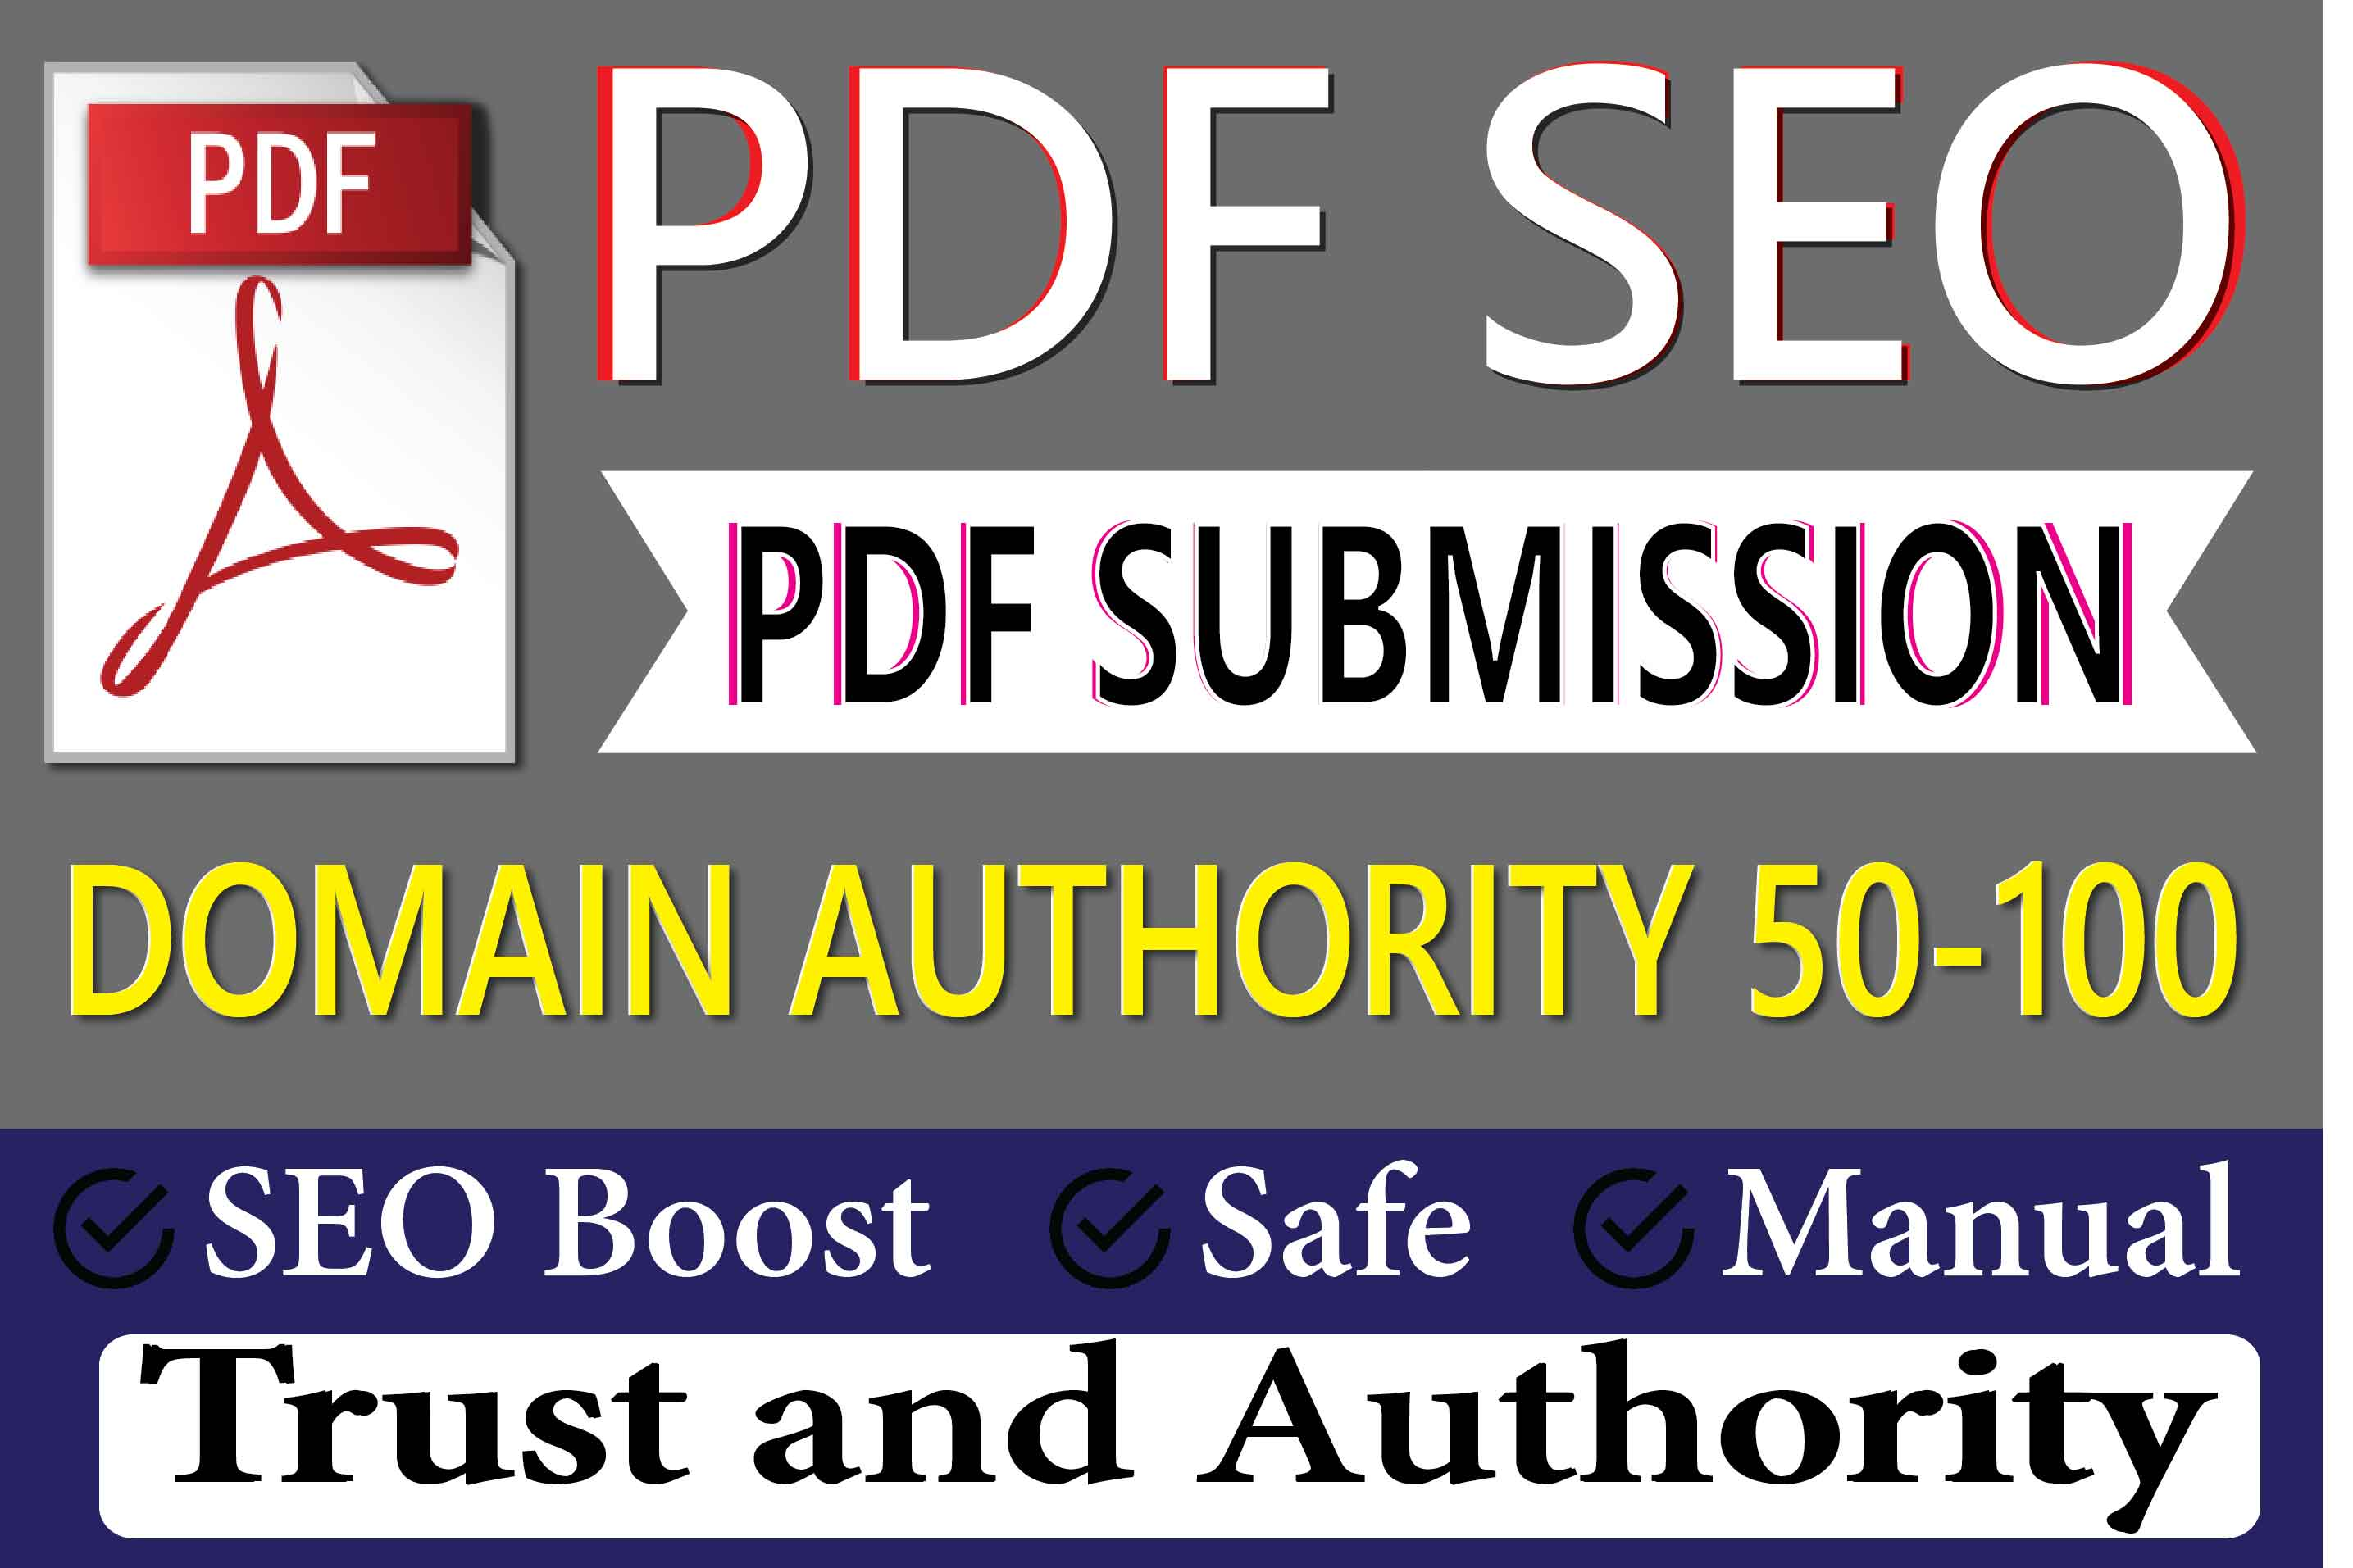 Get Extreme 35 Manual Authority PDF SEO Backlinks to Boosting your Websites or Brand Ranking.